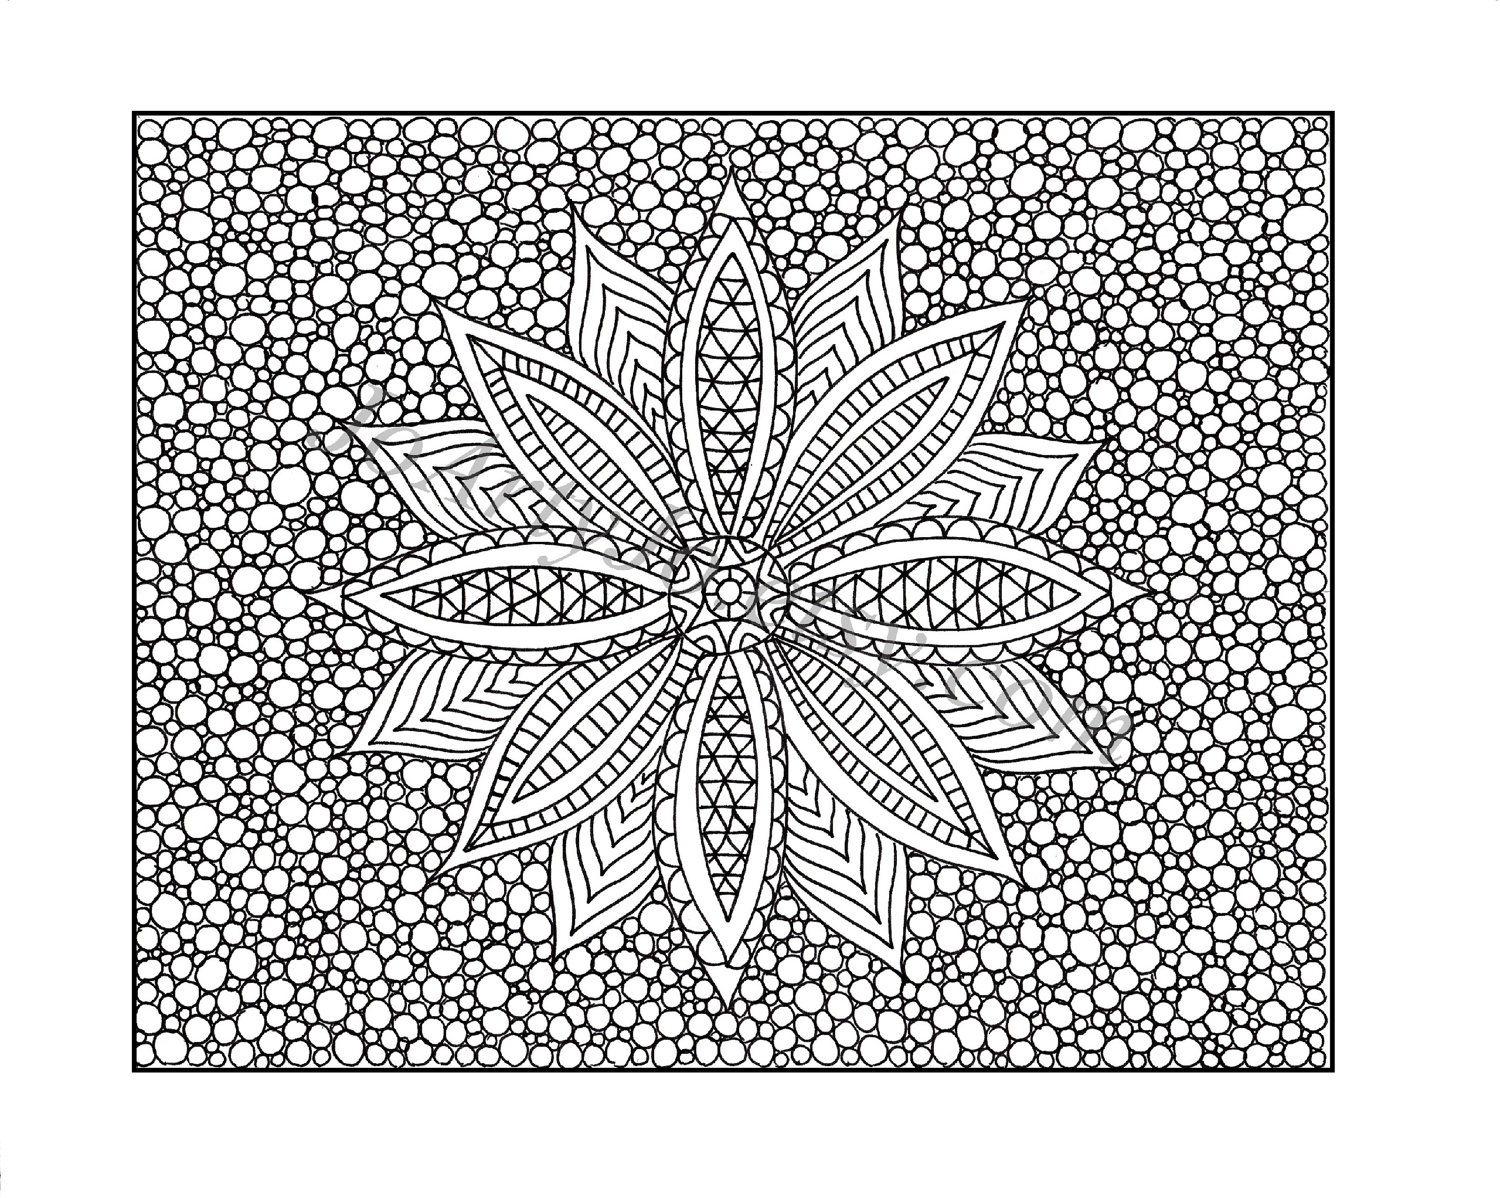 1500x1198 Zentangle Patterns Coloring Pages, Free Coloring Pages